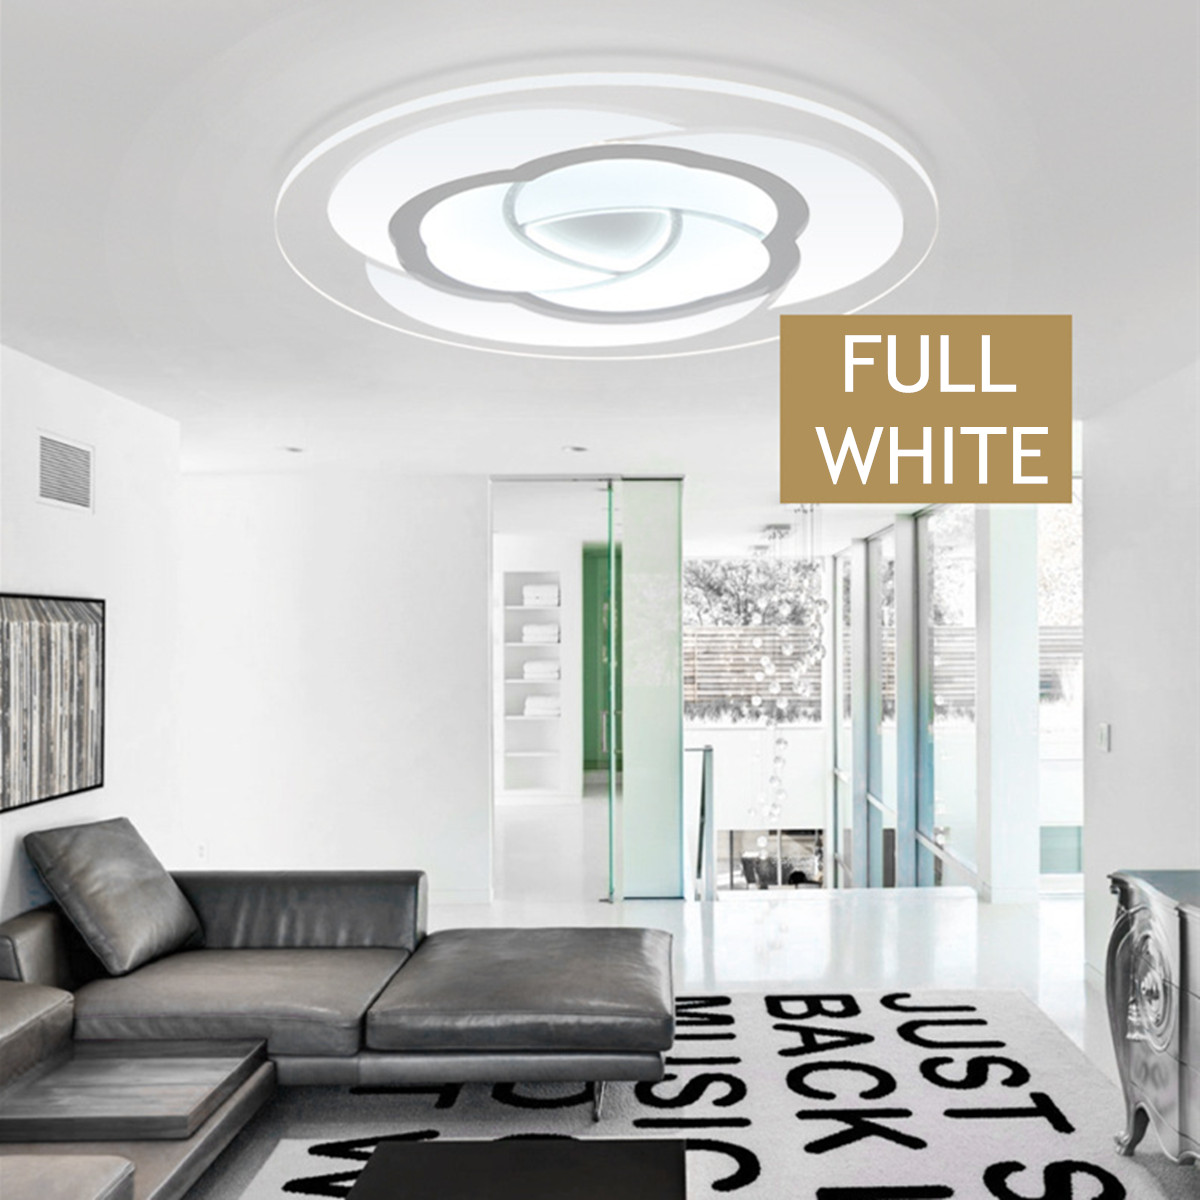 room is difference image white warm what downlight are and lights for light between the blog cool led rooms perfect living